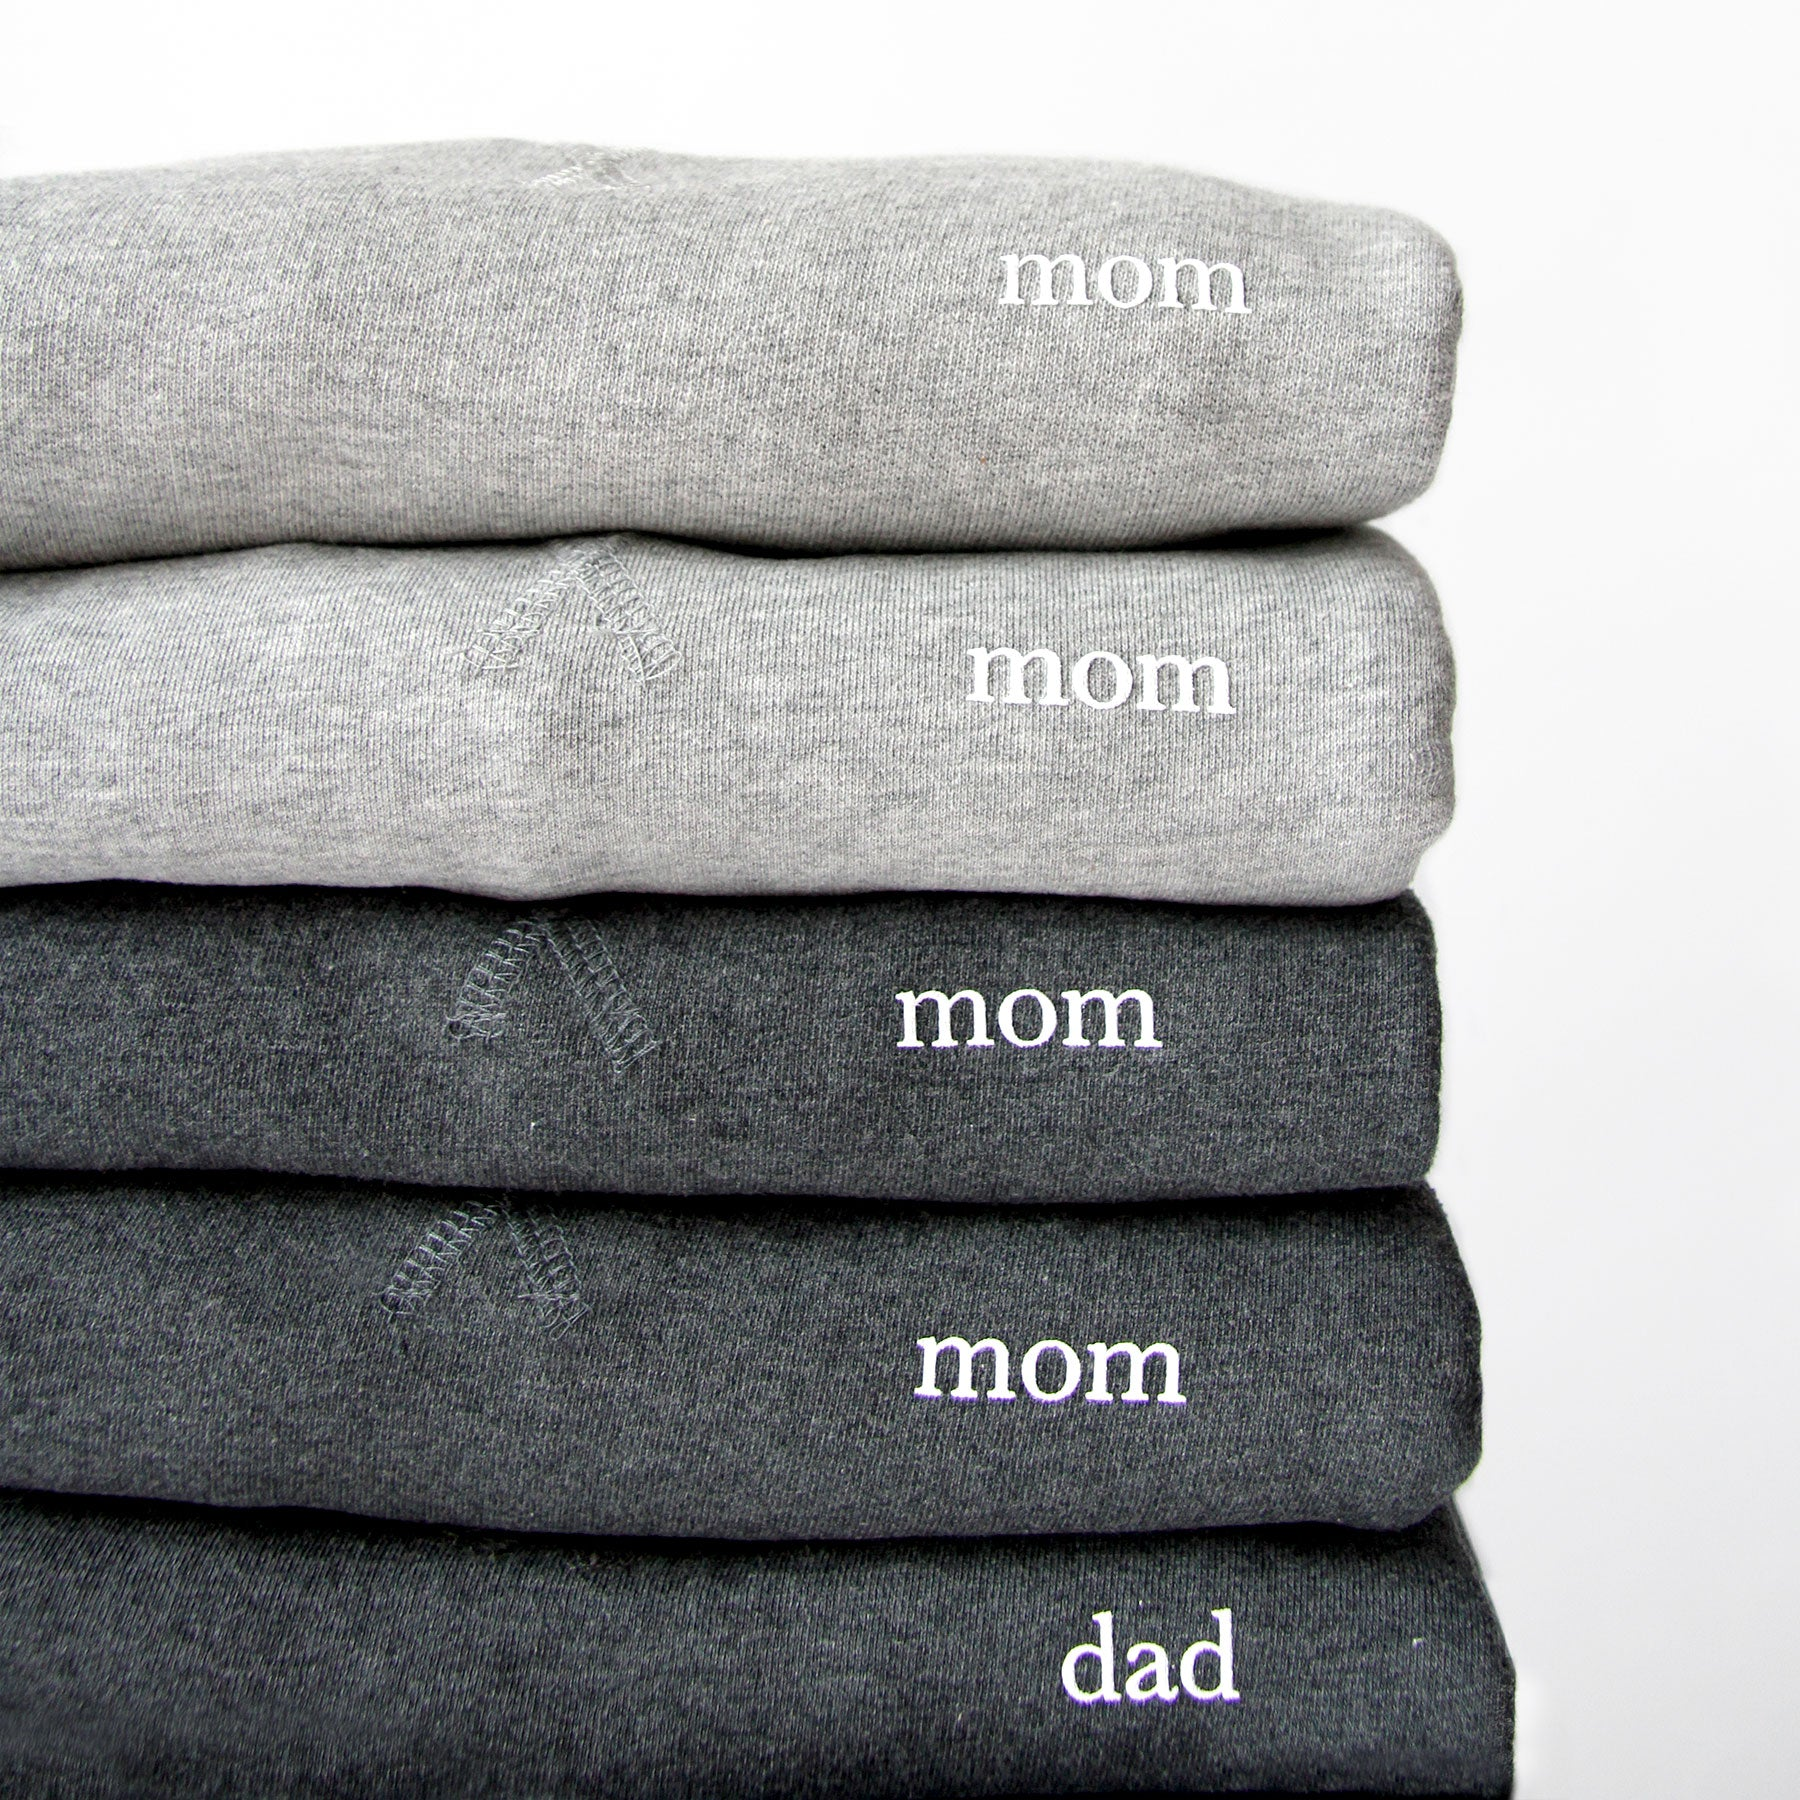 Mom and Dad Crewneck Sweaters – Province of Canada